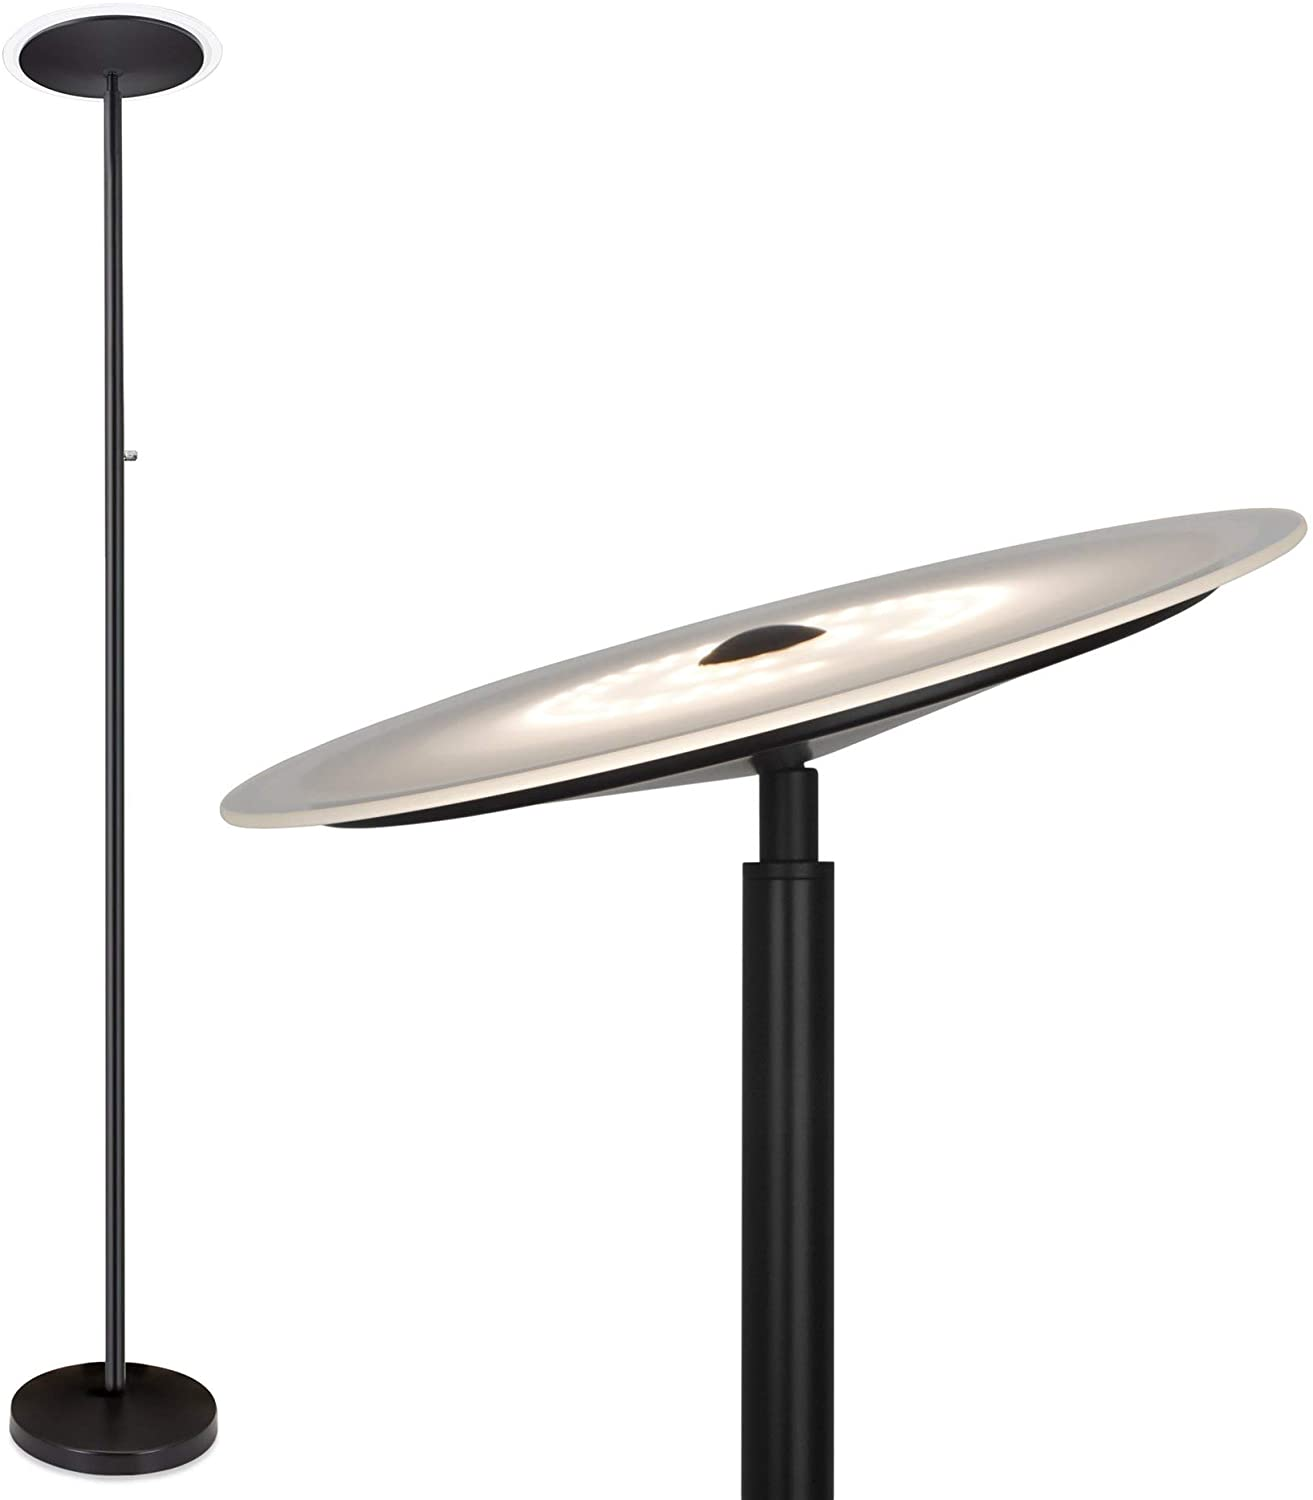 Kira Home Horizon 70 Modern LED Torchiere Floor Lamp (36W, 250W eq.), Glass Diffuser, Dimmable, Timer and Wall Switch Compatible, Adjustable Head, 3000k Warm White Light, Black Finish